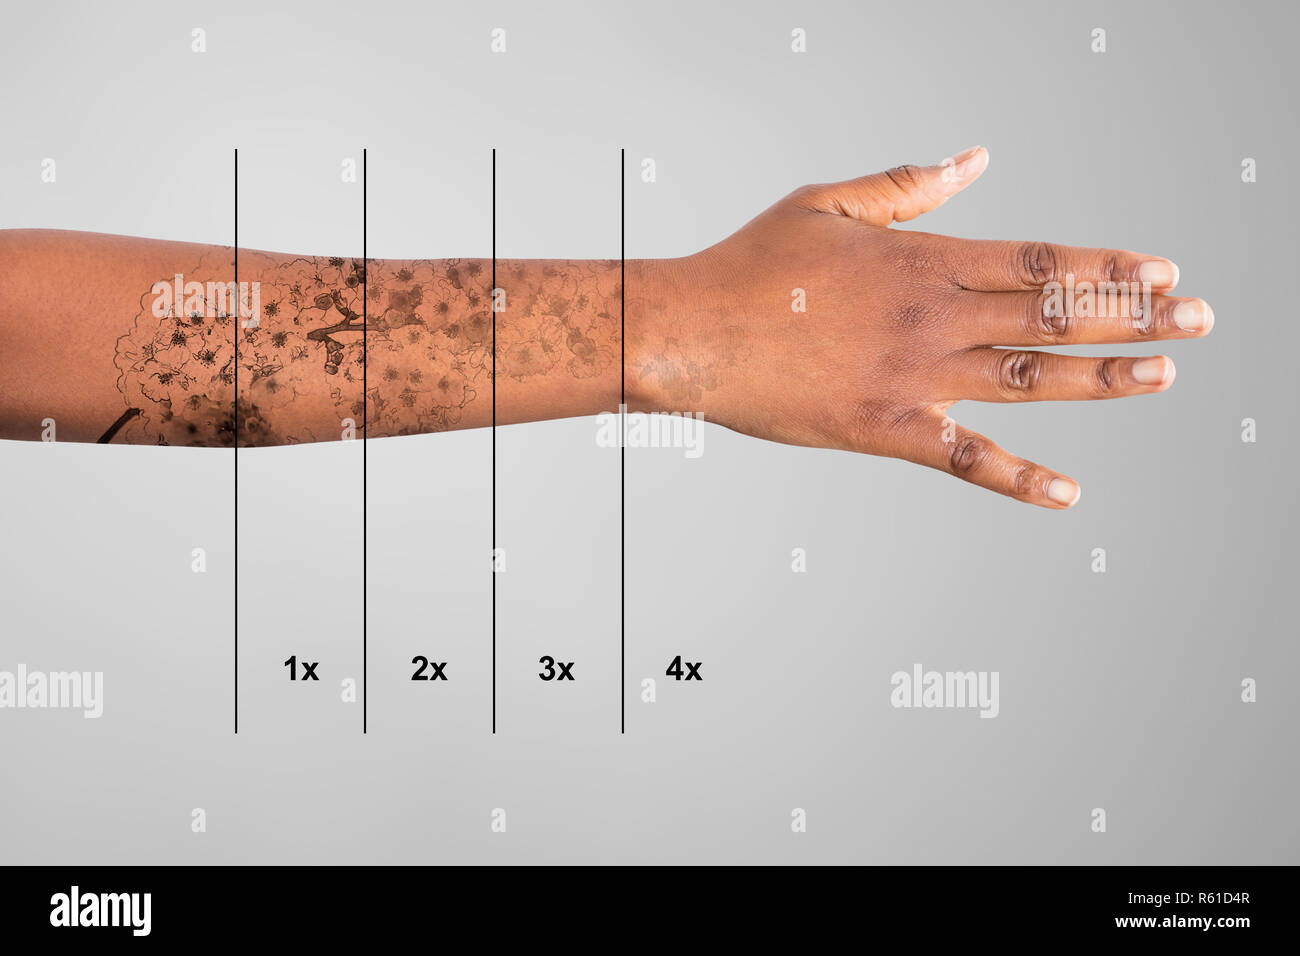 Laser Tattoo Removal On Woman\'s Hand Stock Photo: 227454999 - Alamy